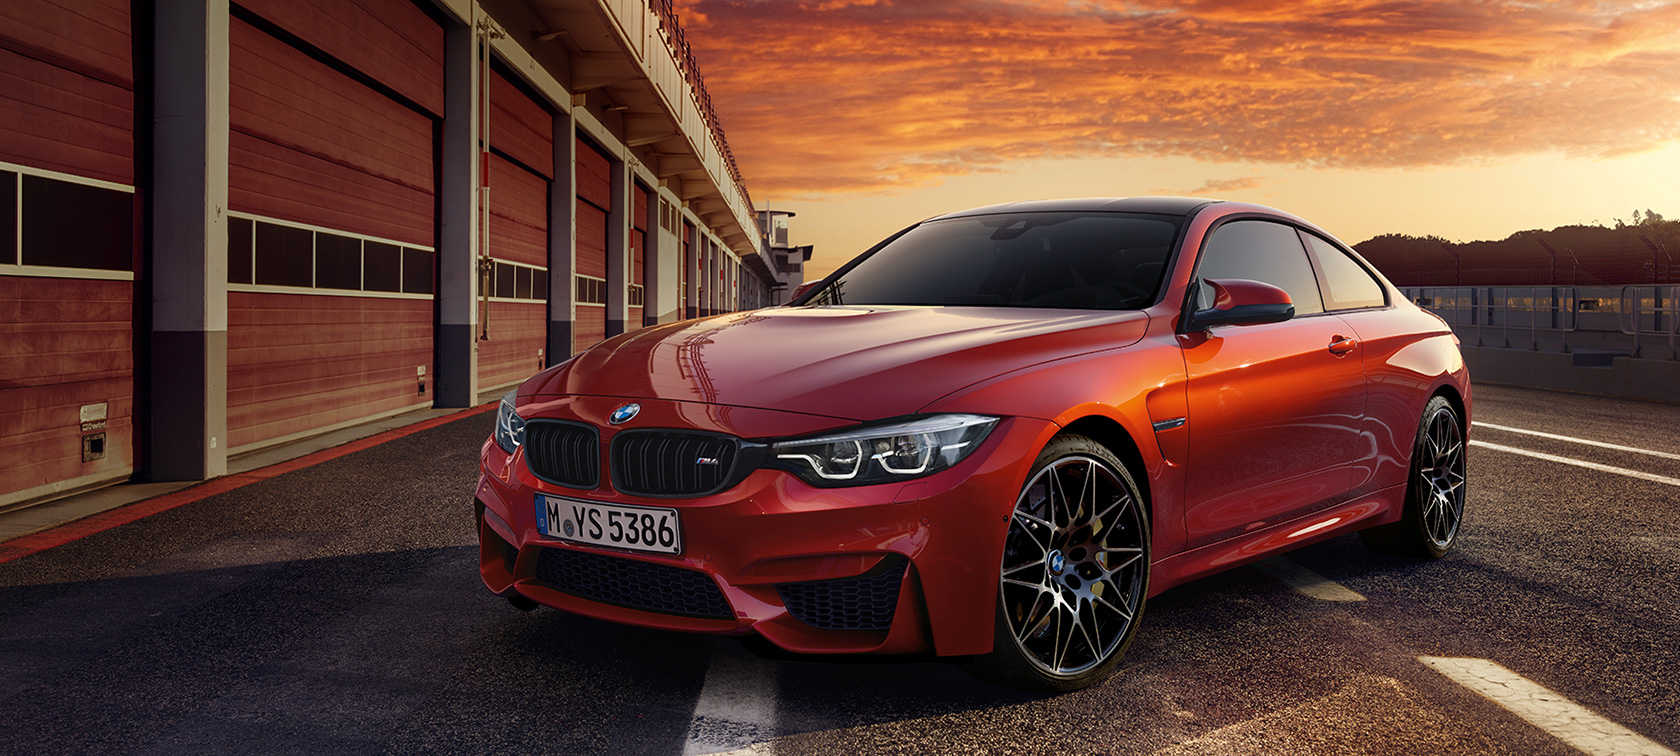 BMW M-Series M4 Coupe in red: road stop